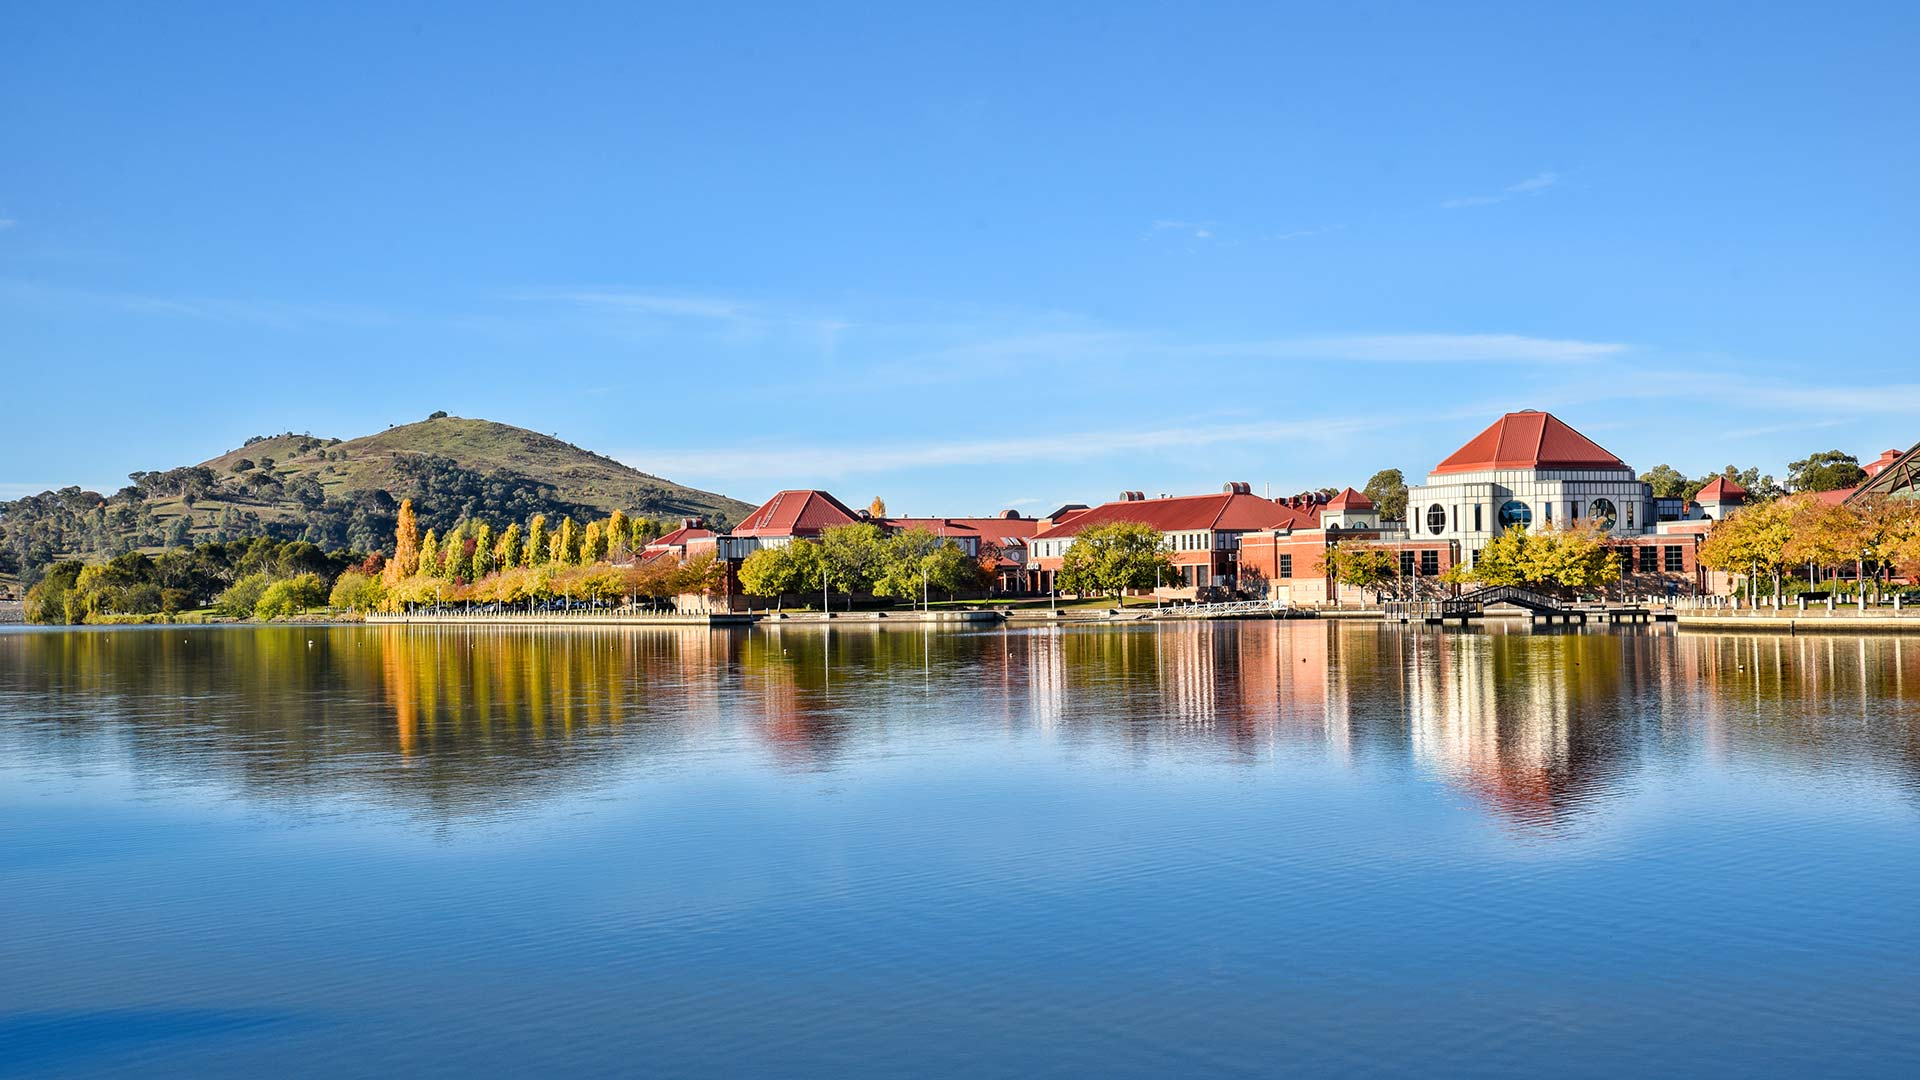 Panorama to illustrate dating in tuggeranong